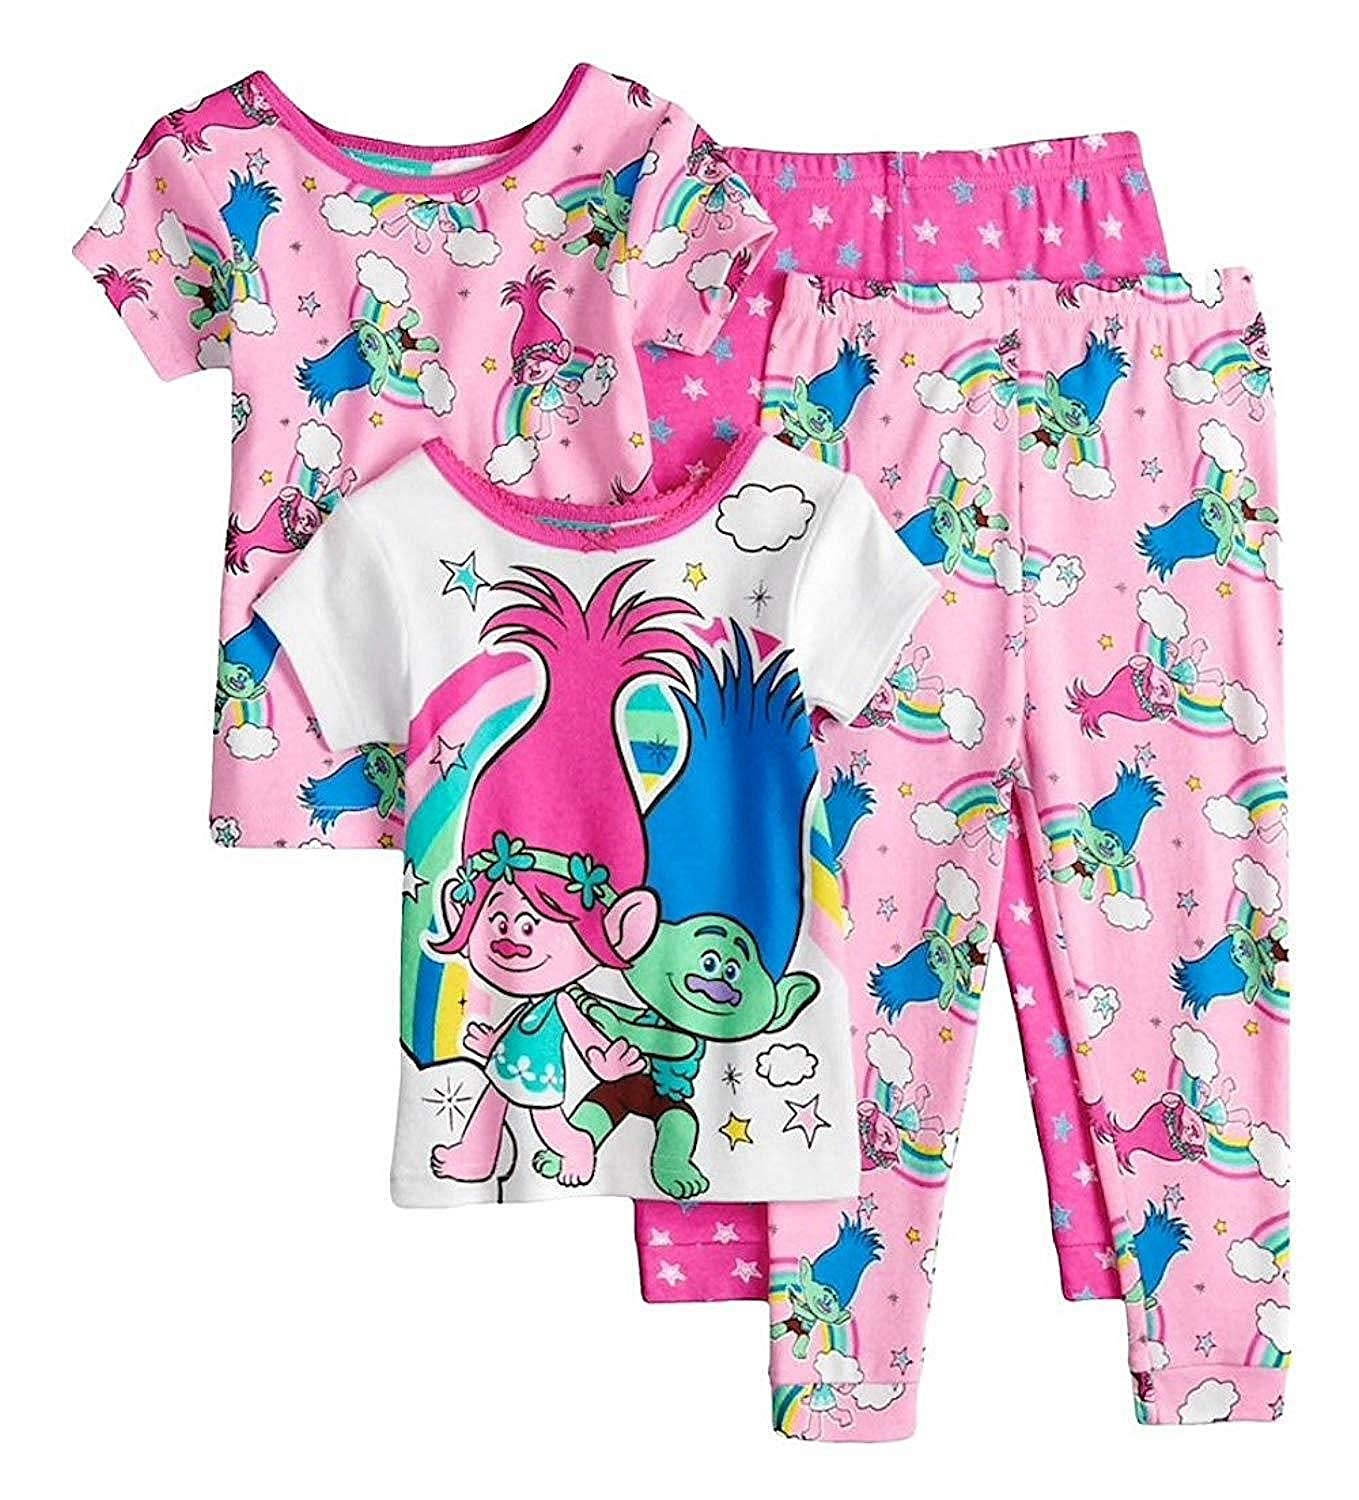 Size 3T Trolls Poppy and Branch Rainbow Short-Sleeved 4-Piece Pajama Set